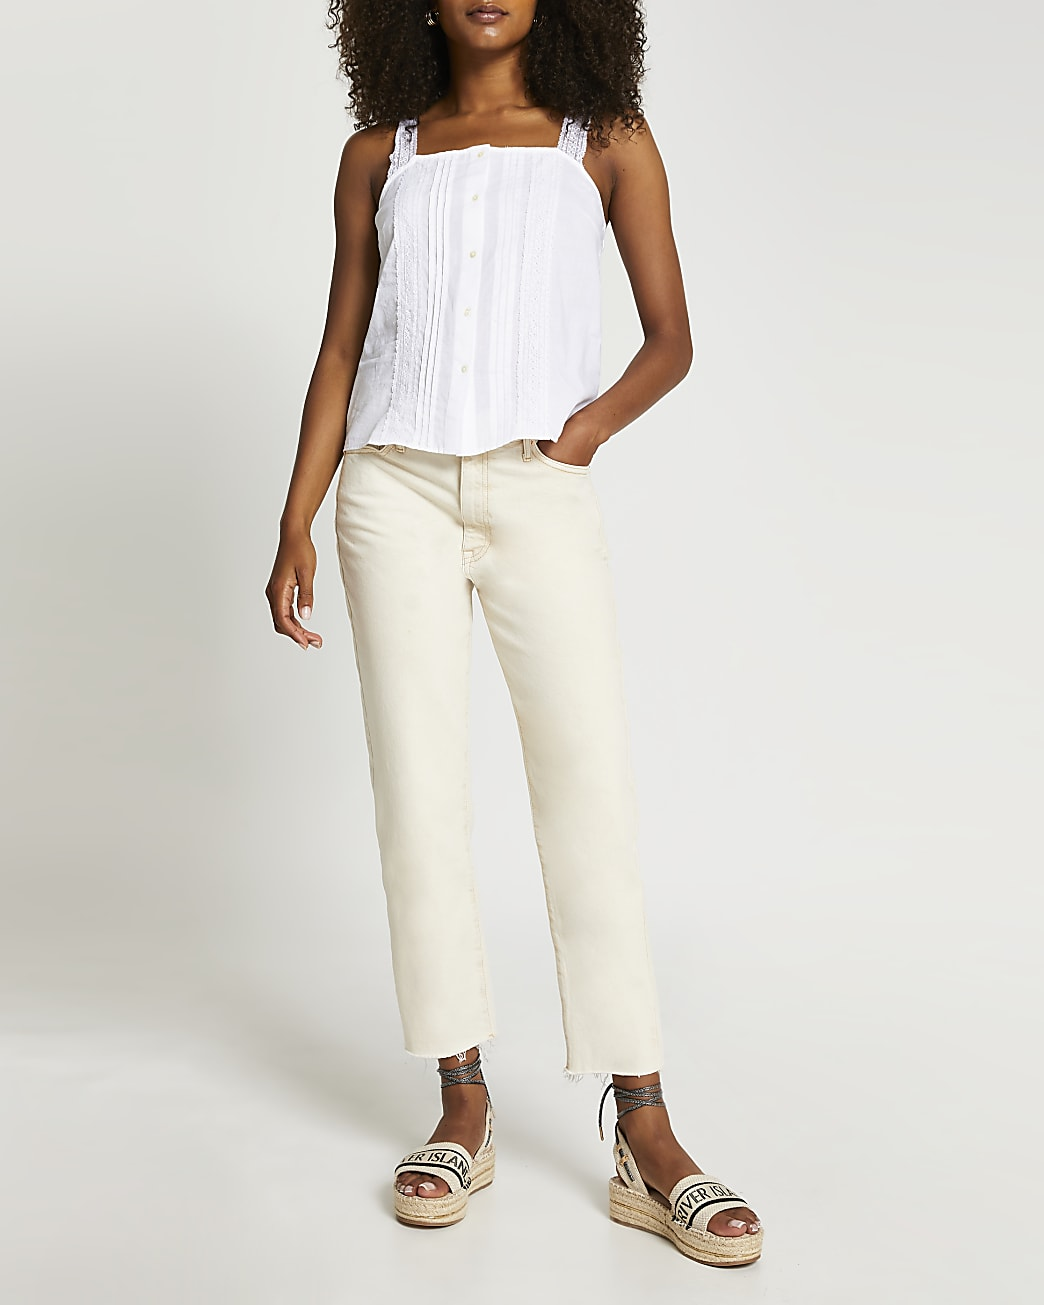 White sleeveless lace cami top